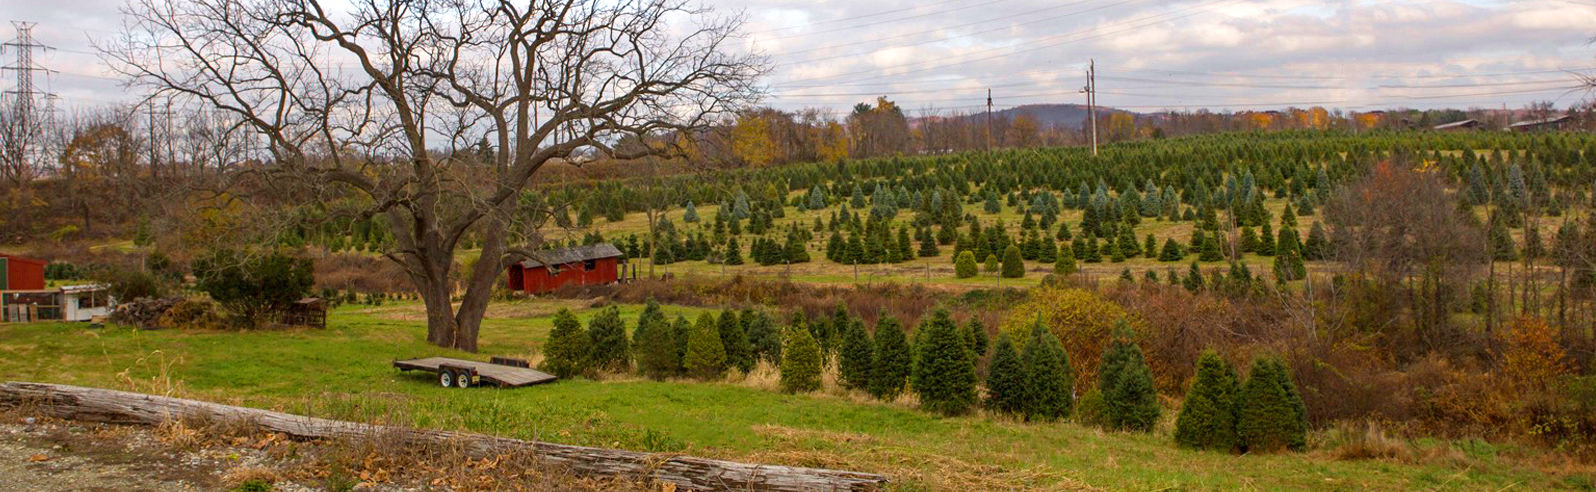 Christmas Tree Farm in Central New Jersey